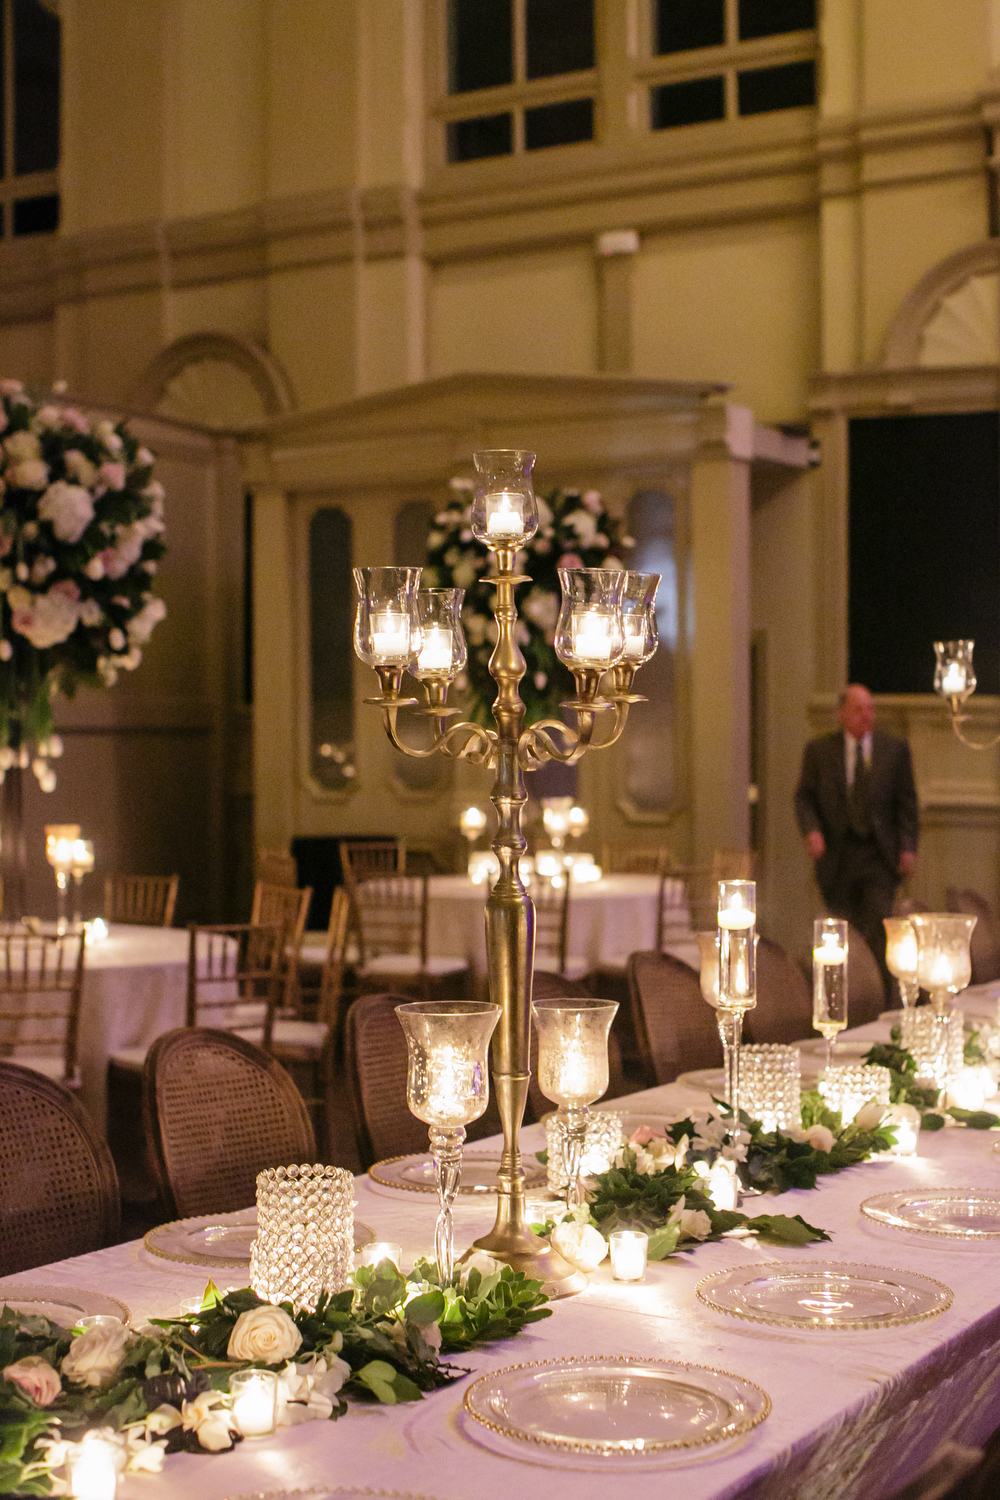 How to transform an open ballroom with stunning decor | Sapphire Events | Greer G Photography | Board of Trade | White and Gold Wedding | Winter Wedding Inspiration | White and Green Wedding | Ballroom wedding | gold candelabras | candlelight wedding